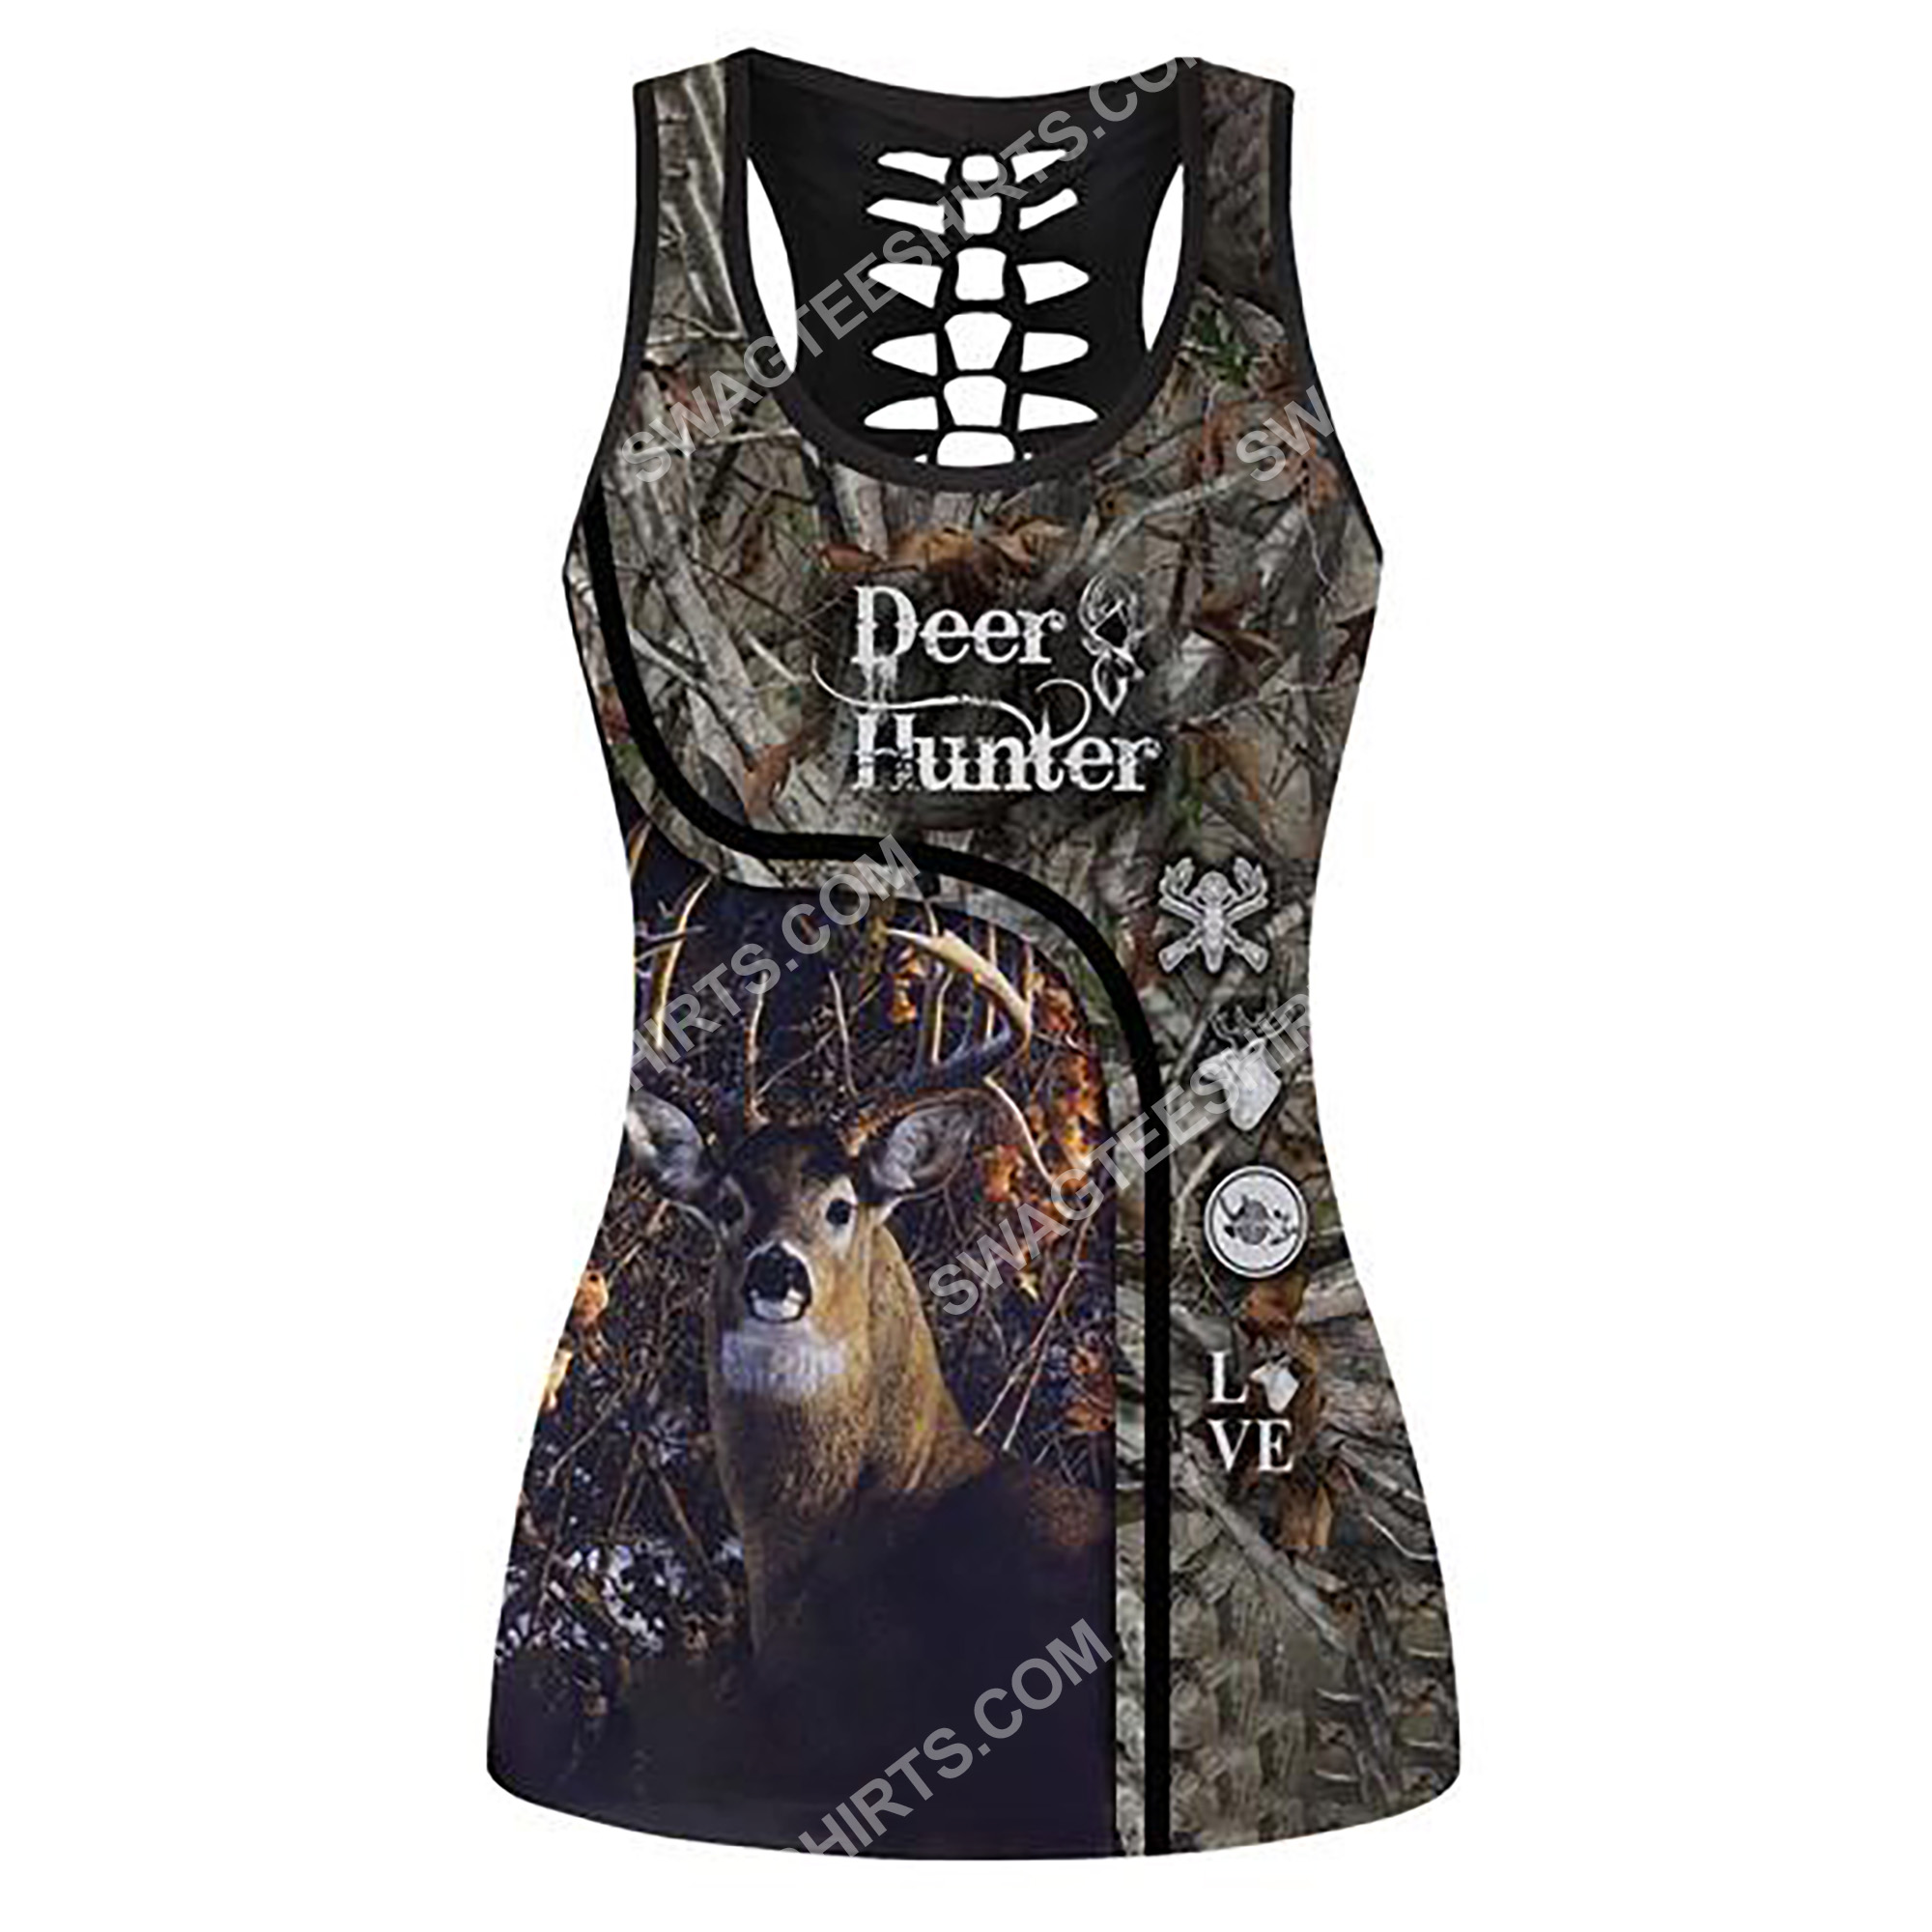 deer hunter in the forest full printing hollow tank top 2(1) - Copy